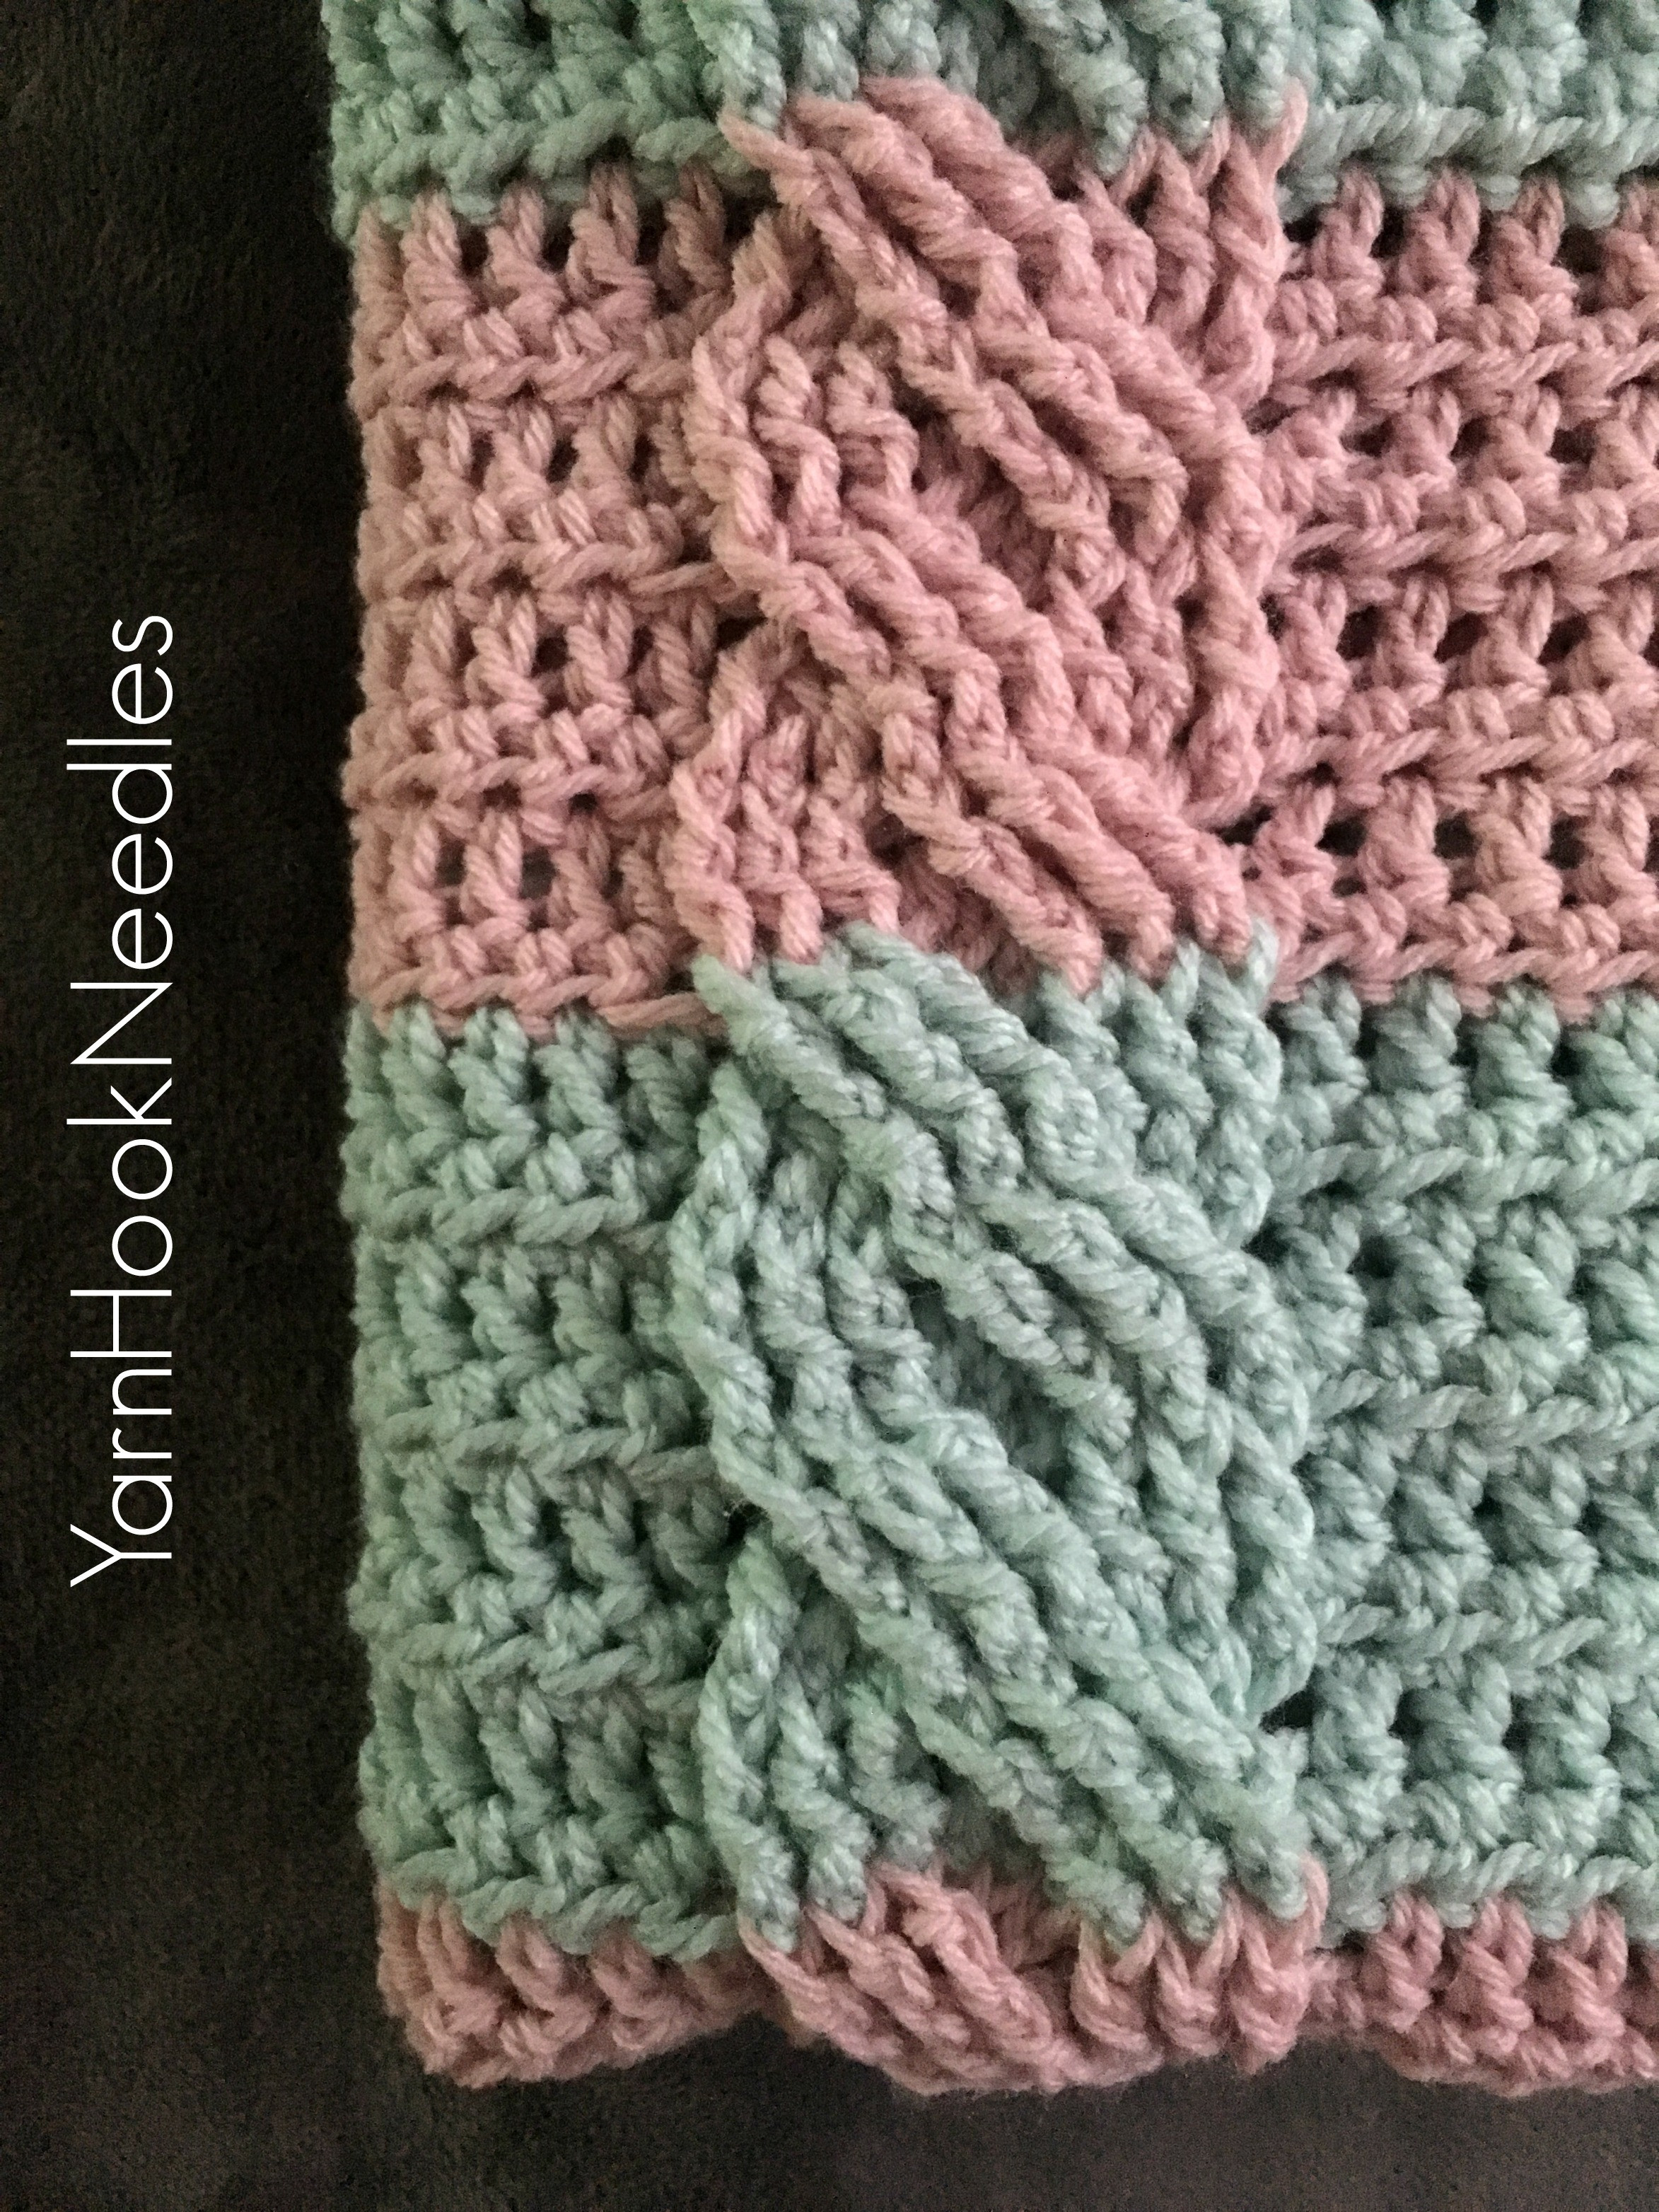 Crochet Cable Pattern Beautiful Crochet Cable Blanket with Free Pattern Yarnhookneedles Of Perfect 40 Ideas Crochet Cable Pattern